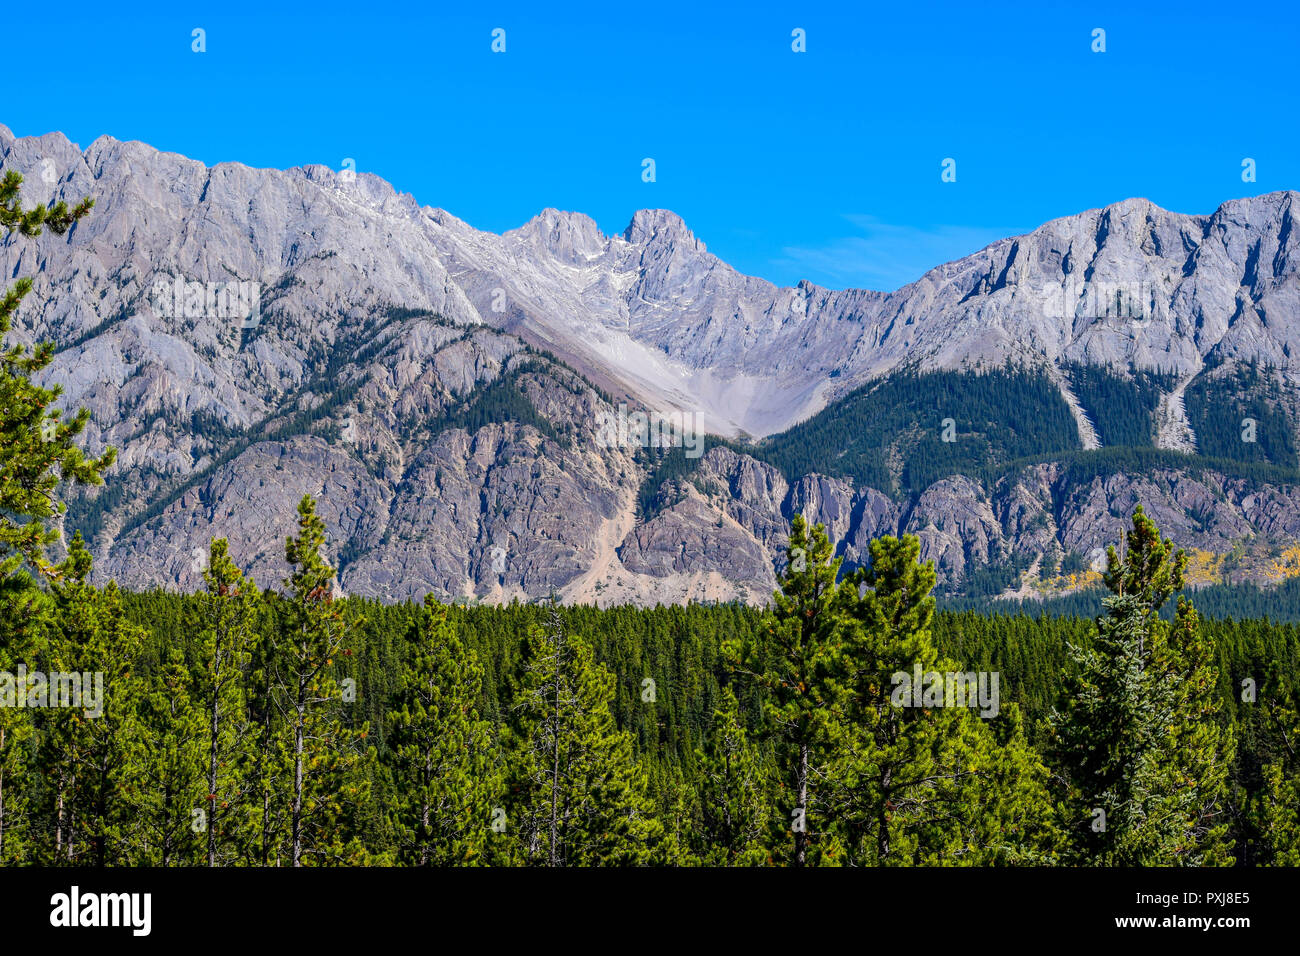 amazing scenery in the Rockies Stock Photo